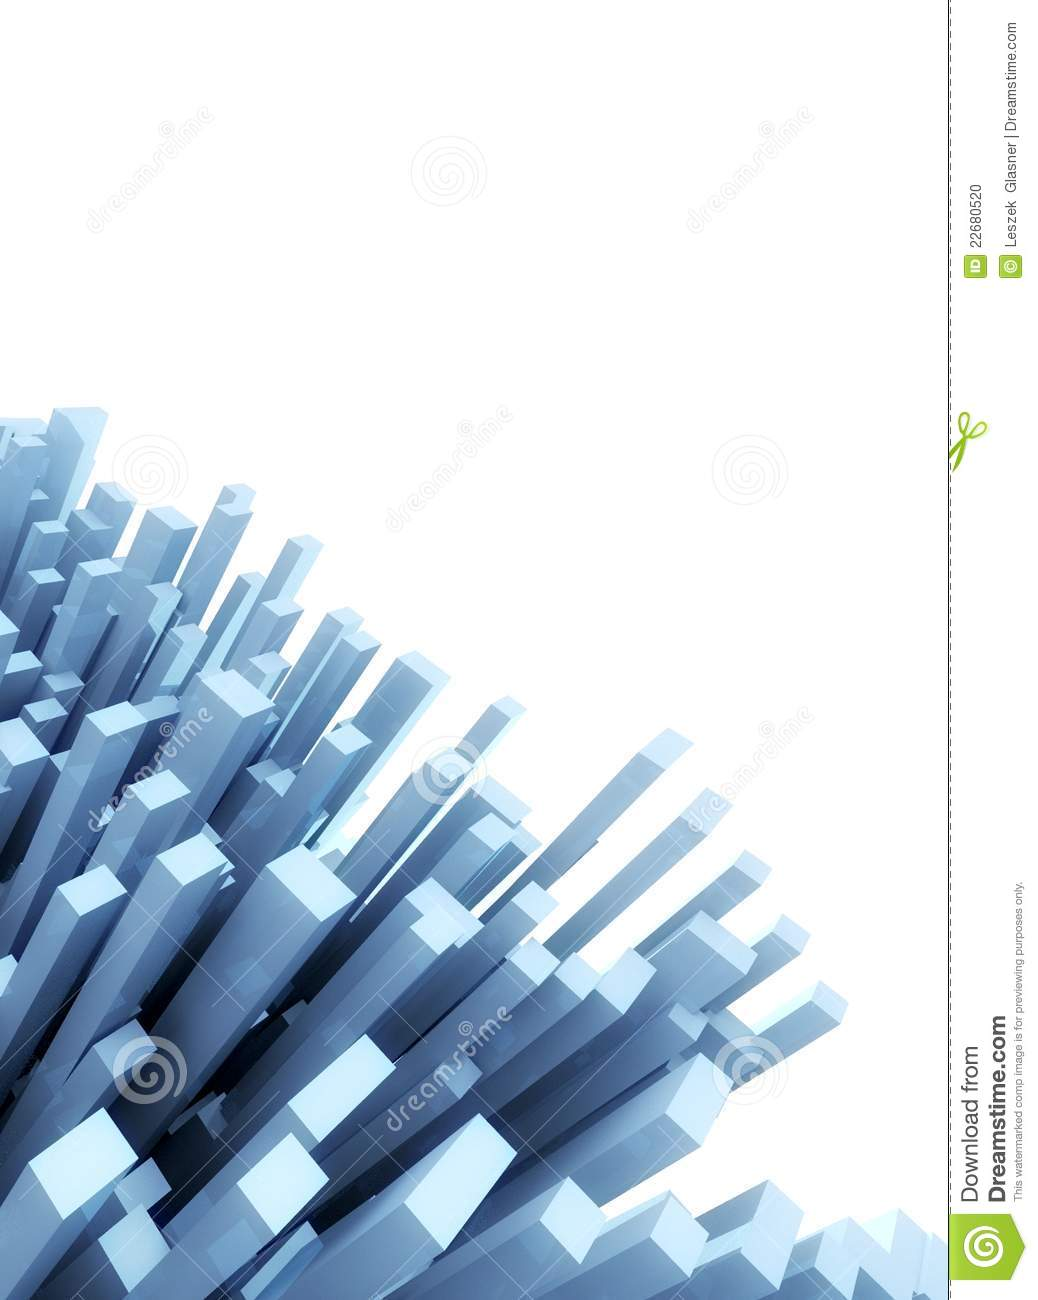 cover design or page background stock photo image 22680520 cover design or page background